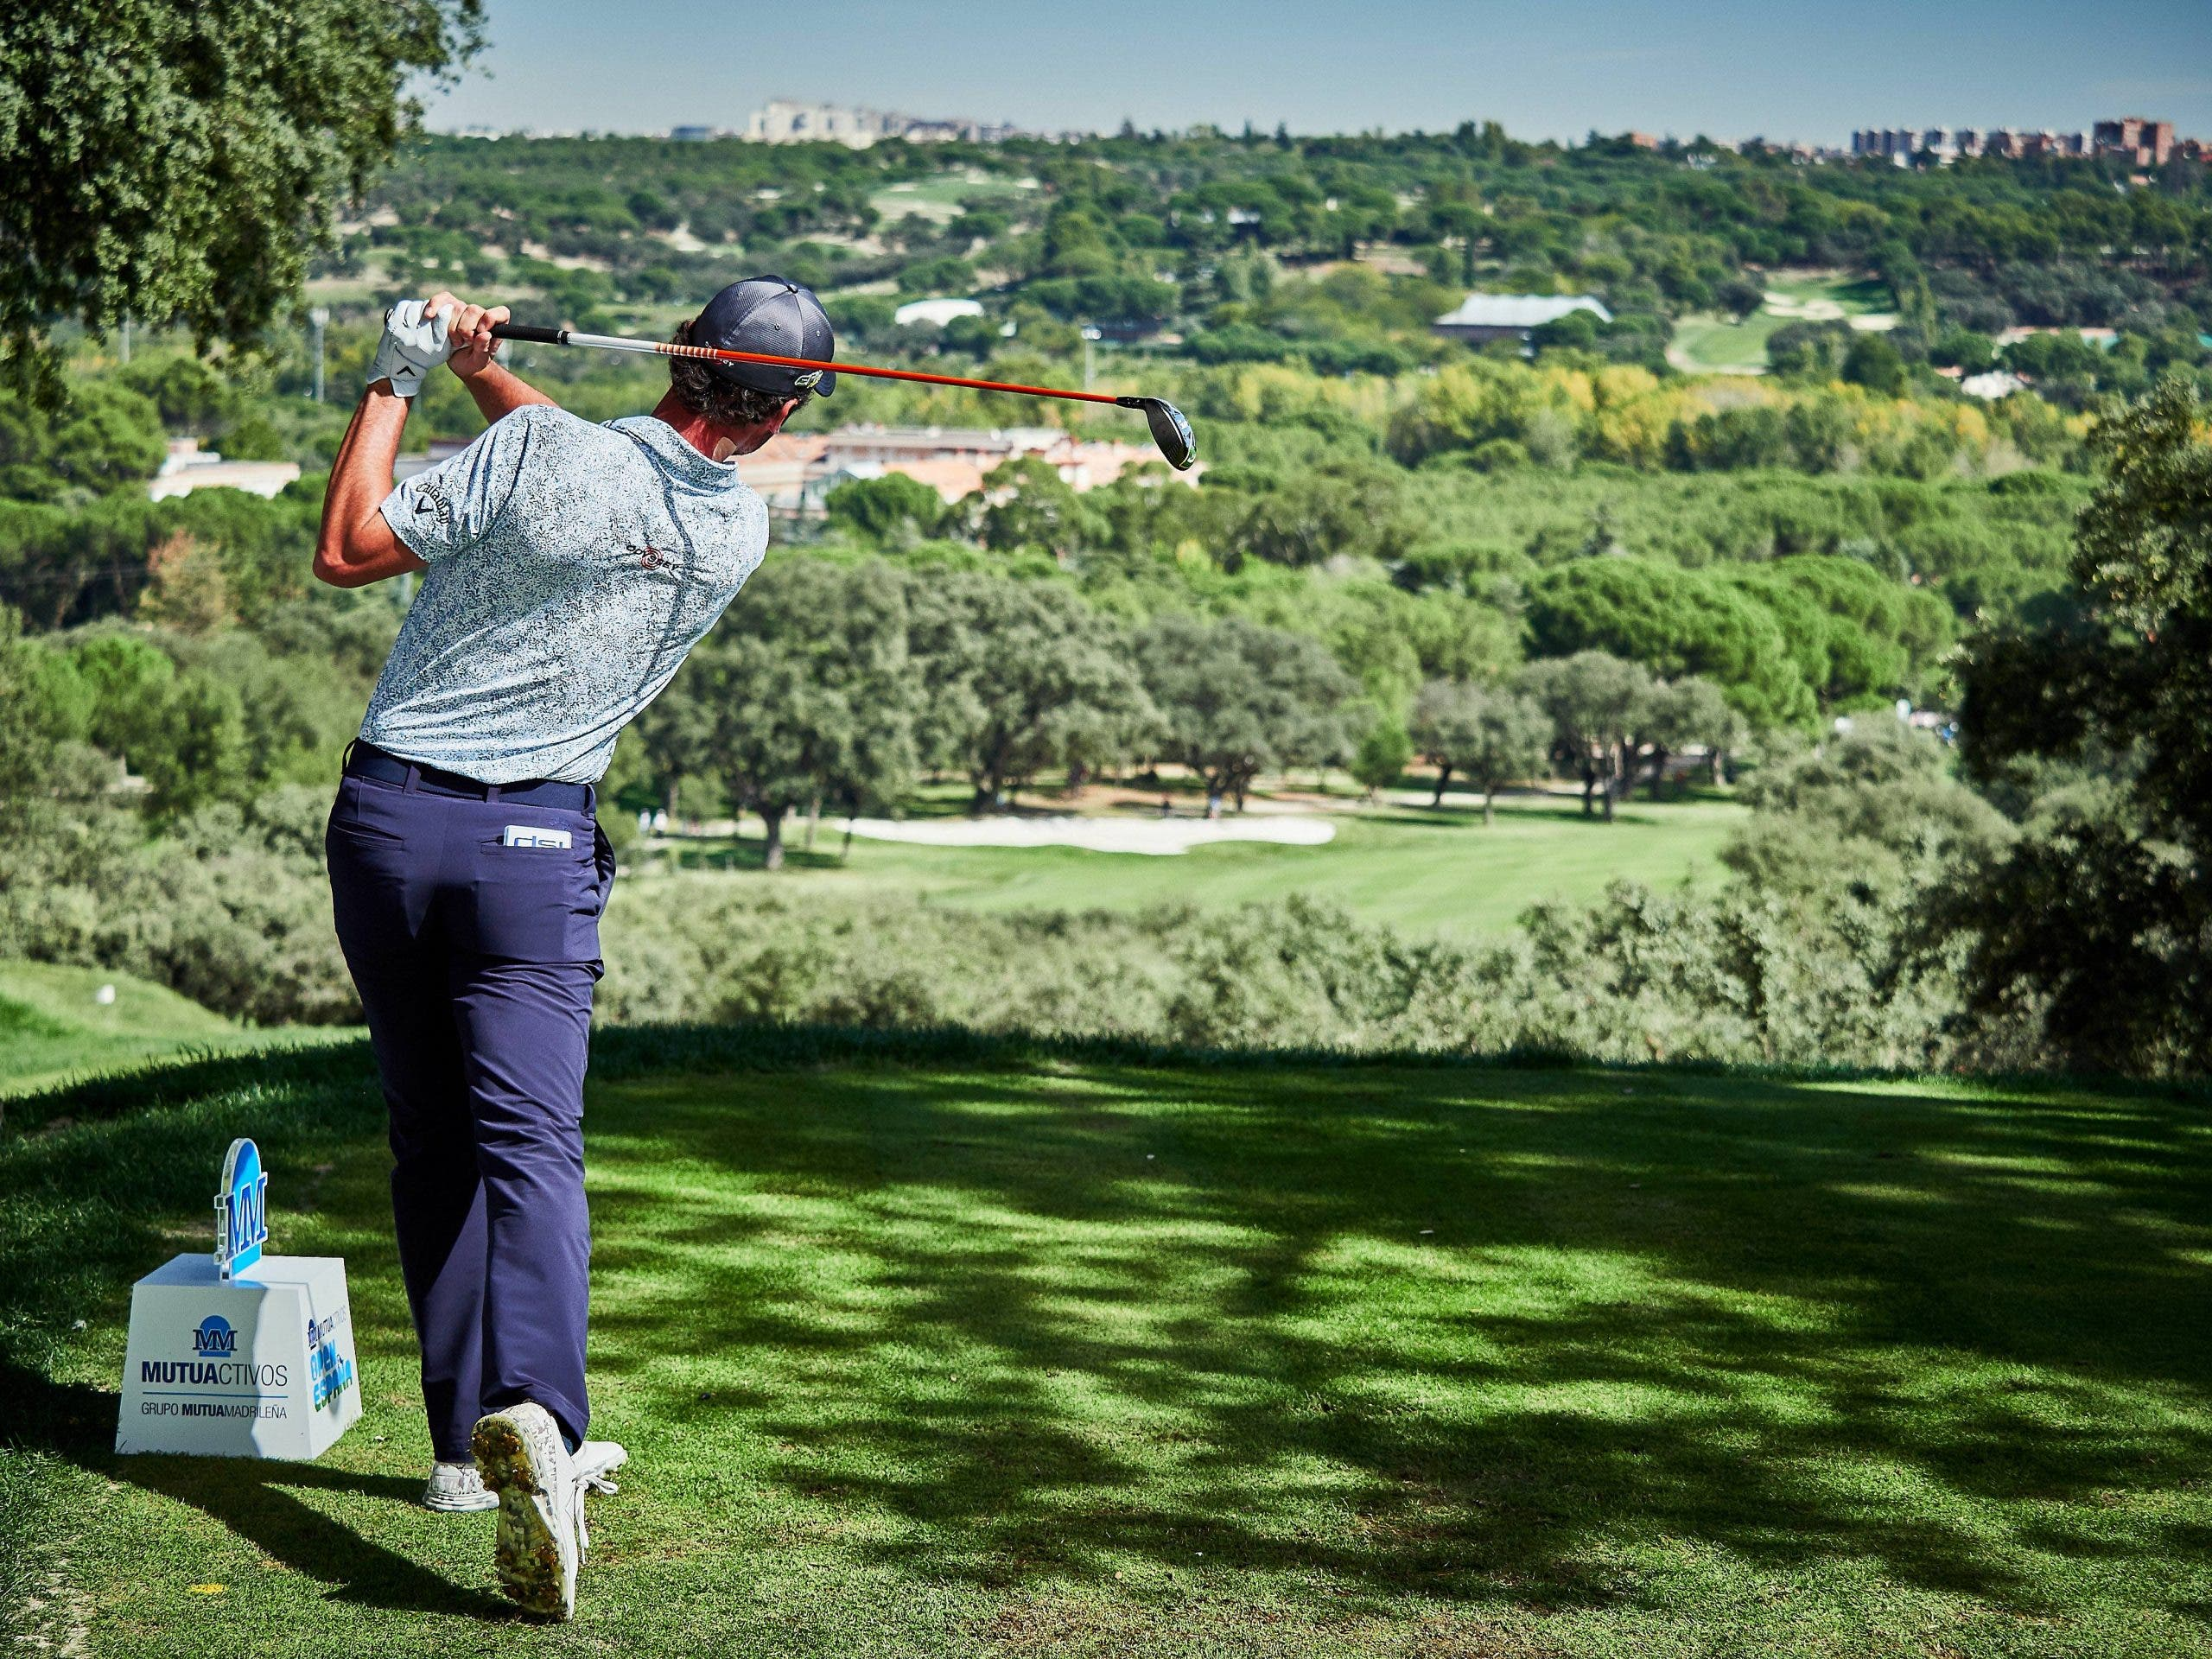 'IN A HOLE' as golf courses on Spain's Costa Blanca want to stop being bunkered by COVID-19 restrictions